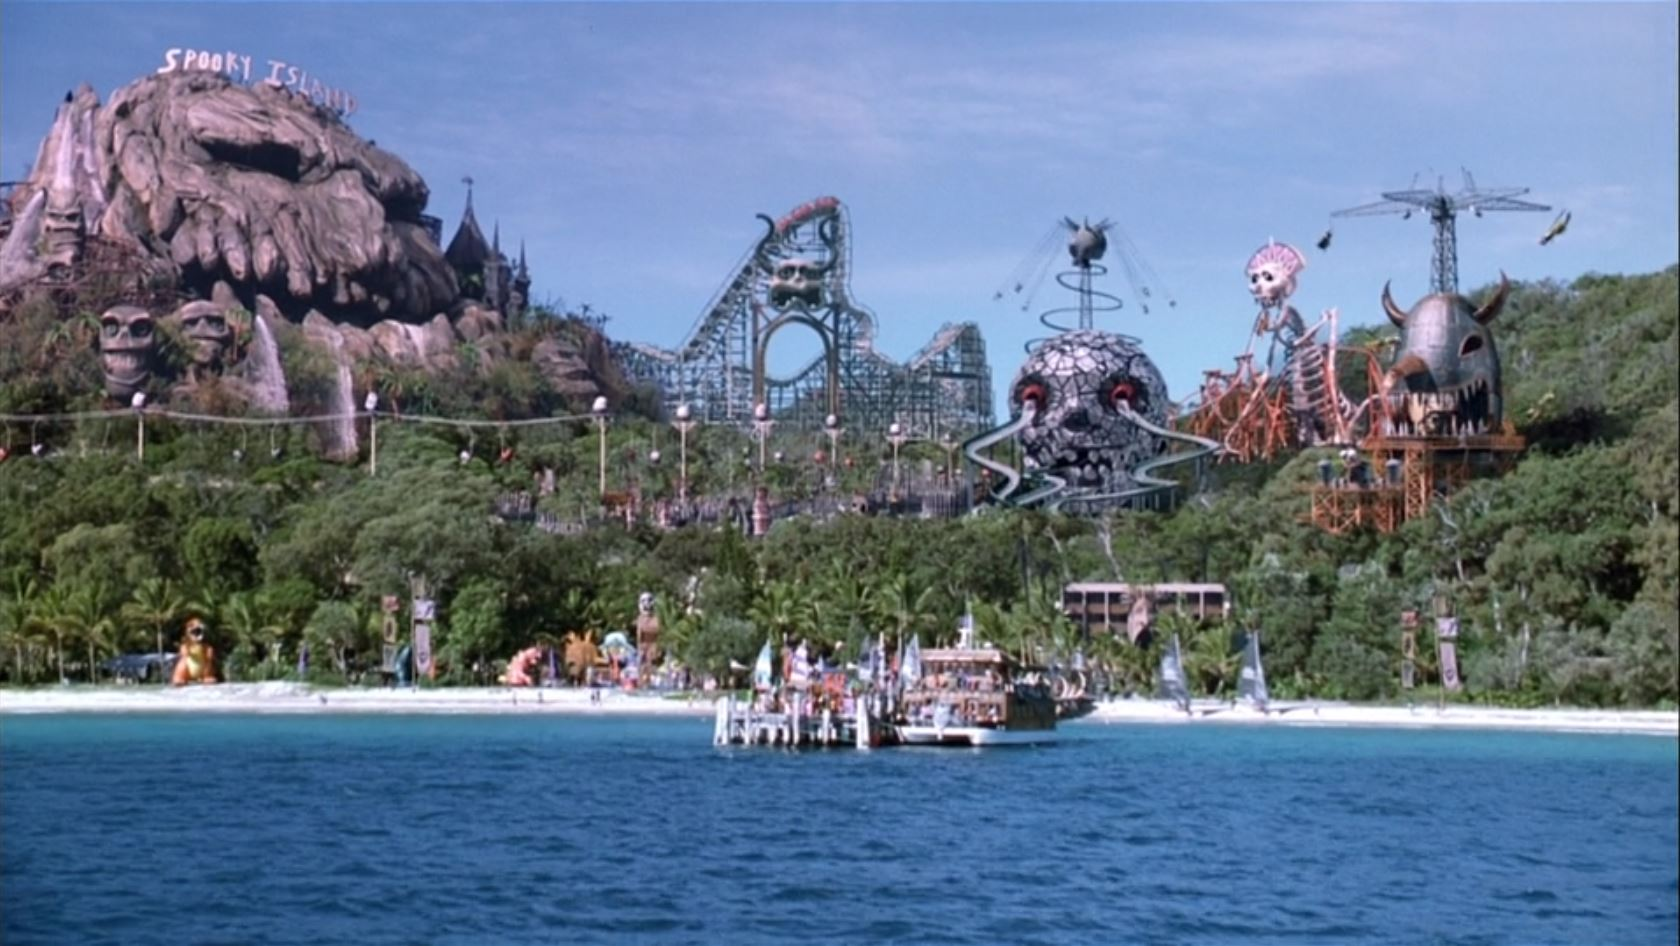 What if Universal built Scooby-Doo's Spooky Island?